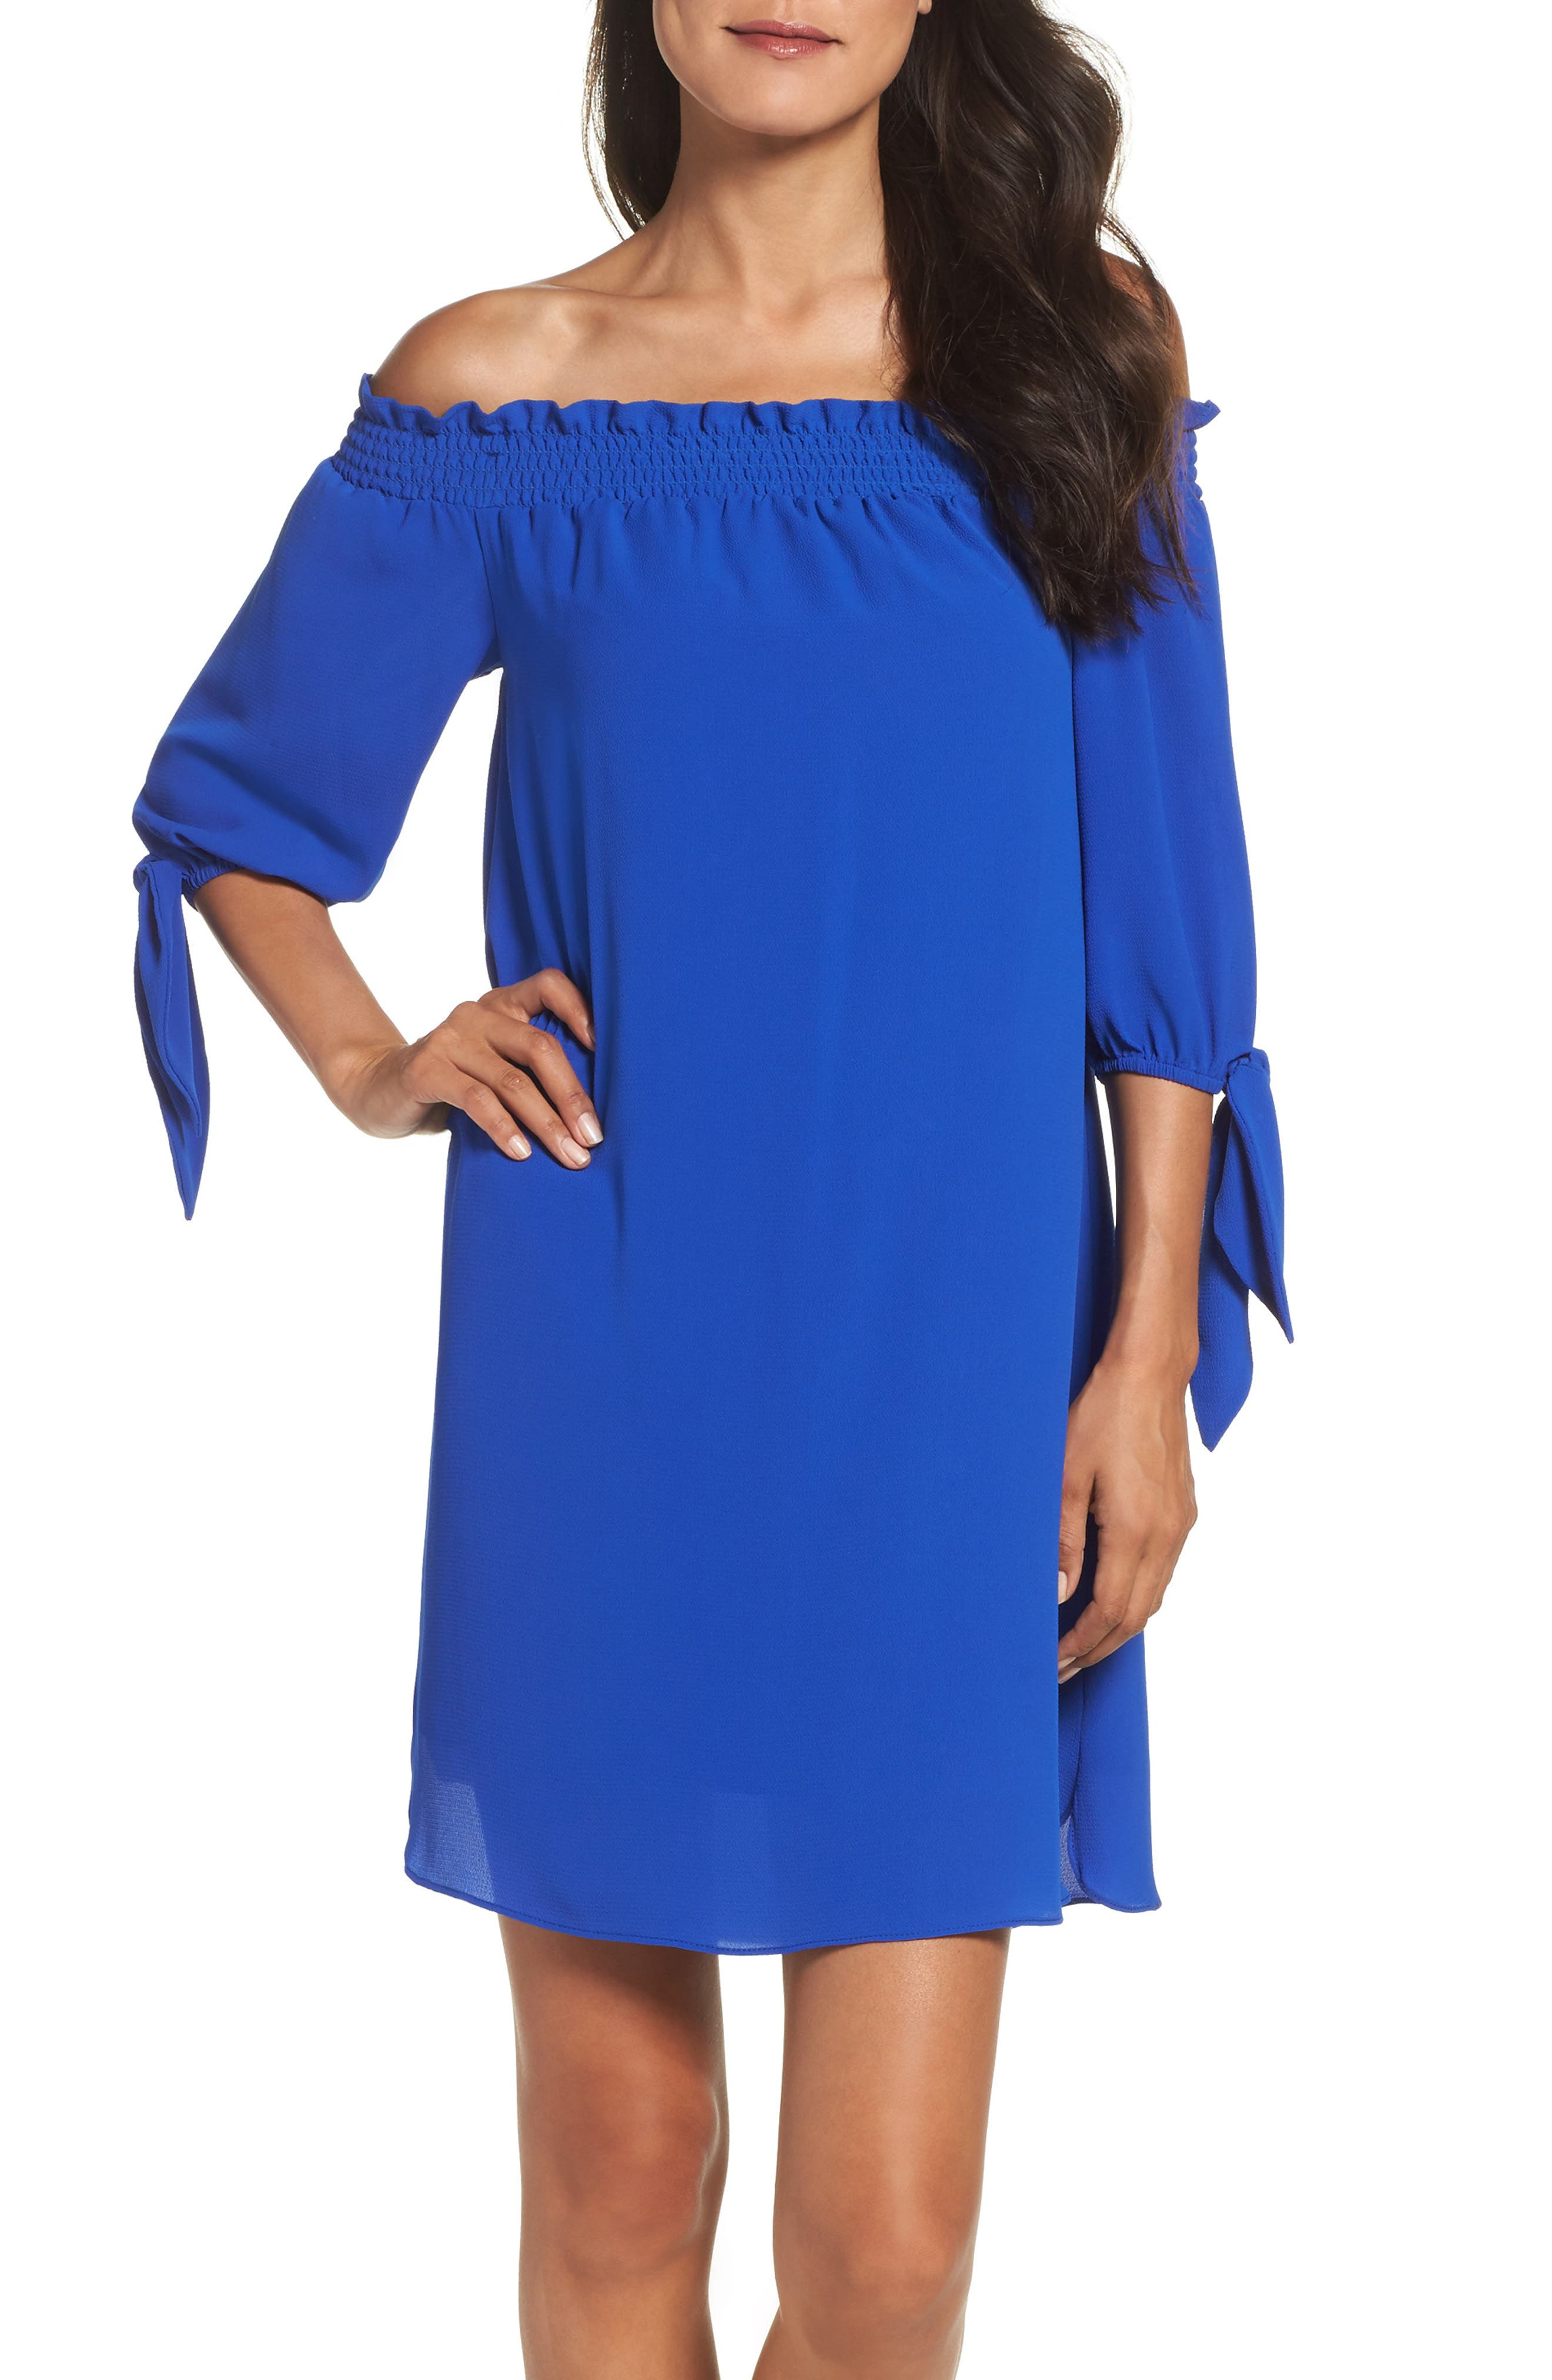 Alternate Image 1 Selected - Vince Camuto Stretch Crepe Shift Dress (Regular & Petite)